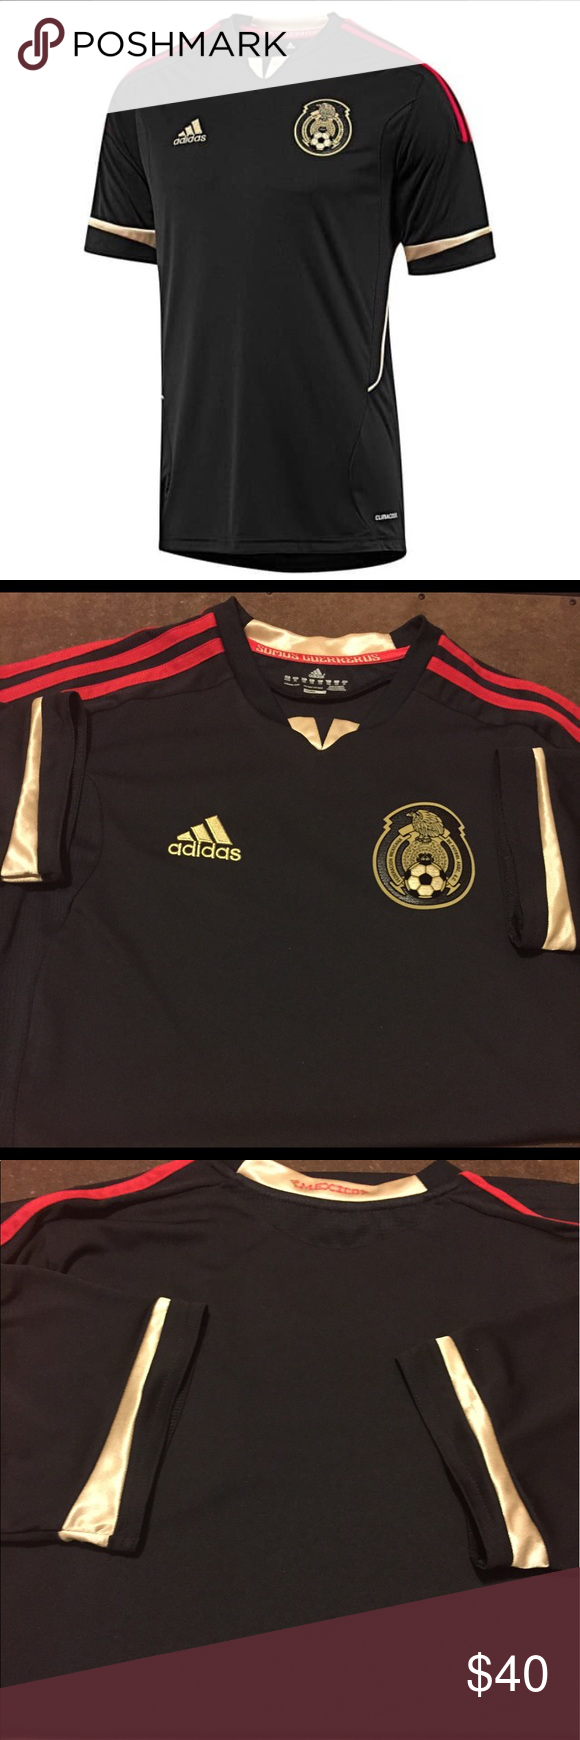 Adidas Men's Mexico Away Soccer Jersey 2011-2012 Used mint condition. Little wear size XL Adidas Tops Tees - Short Sleeve